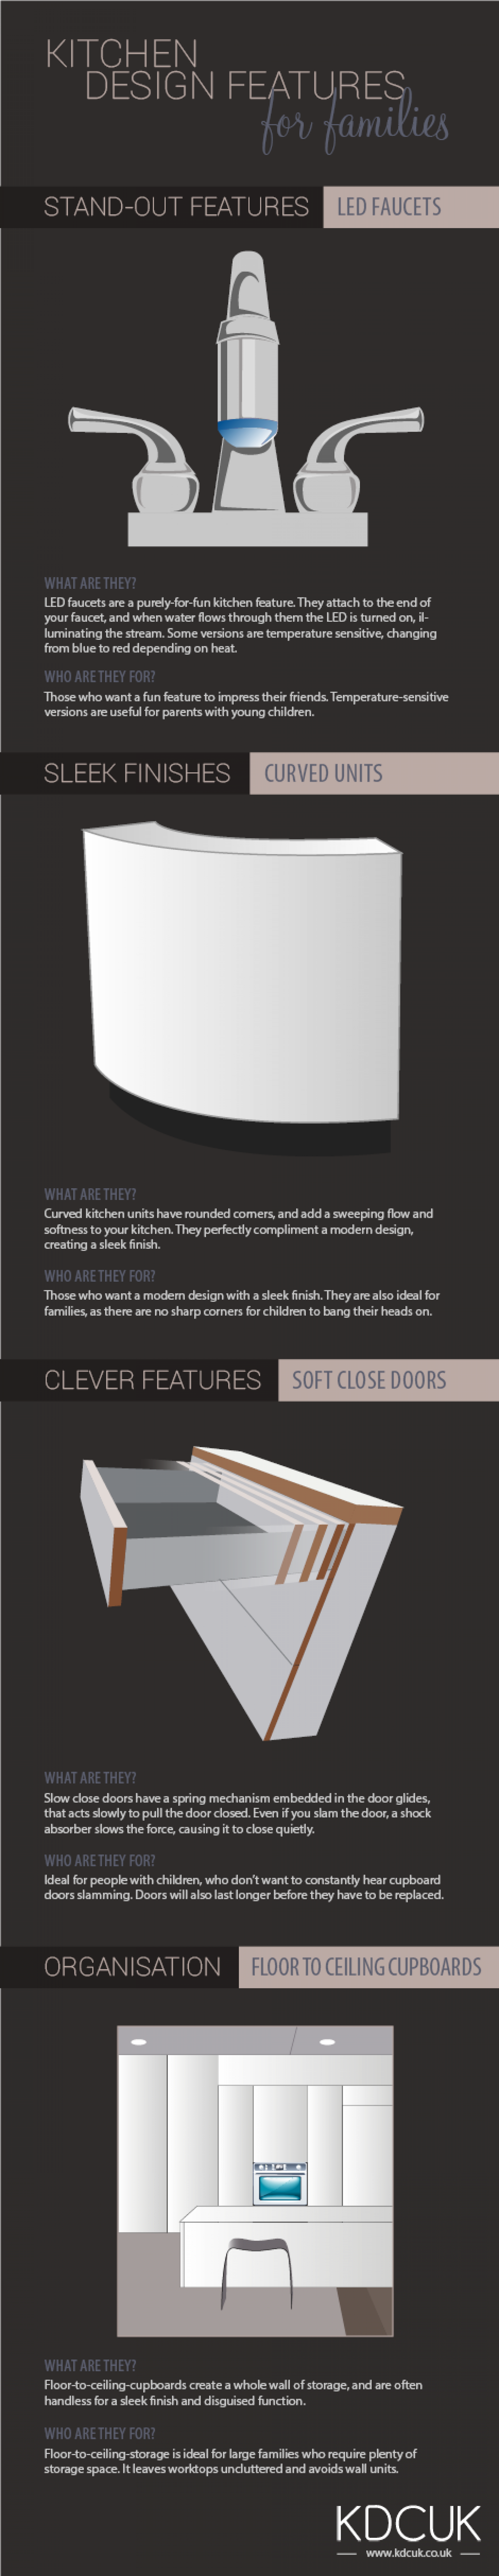 Clever Kitchen Design Features for Families  Infographic